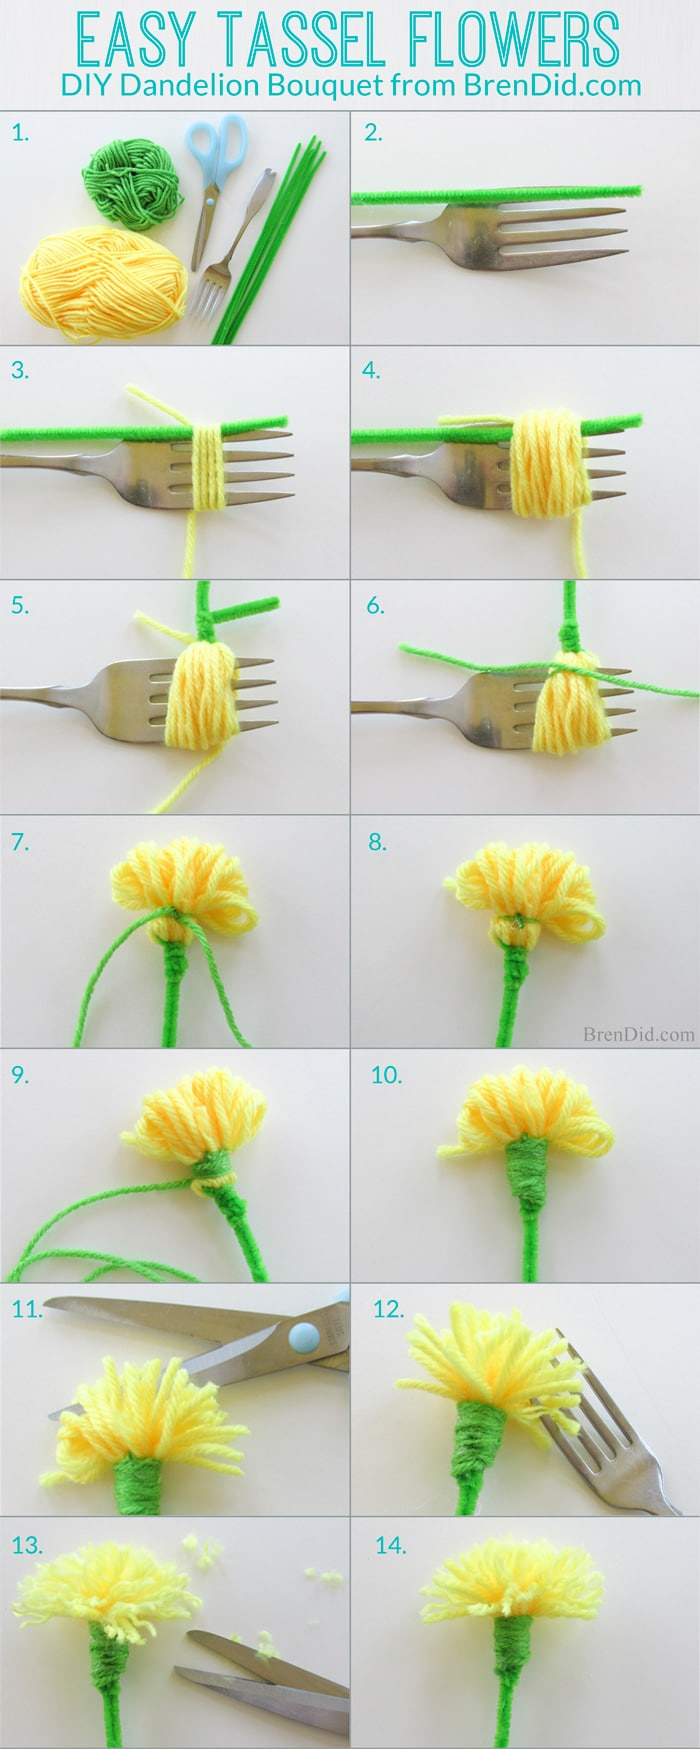 How to make tassel flowers - Make an easy DIY dandelion bouquest with yarn and pipe cleaners to delight someone you love. Perfect for weddings, parties and Mother's Day.